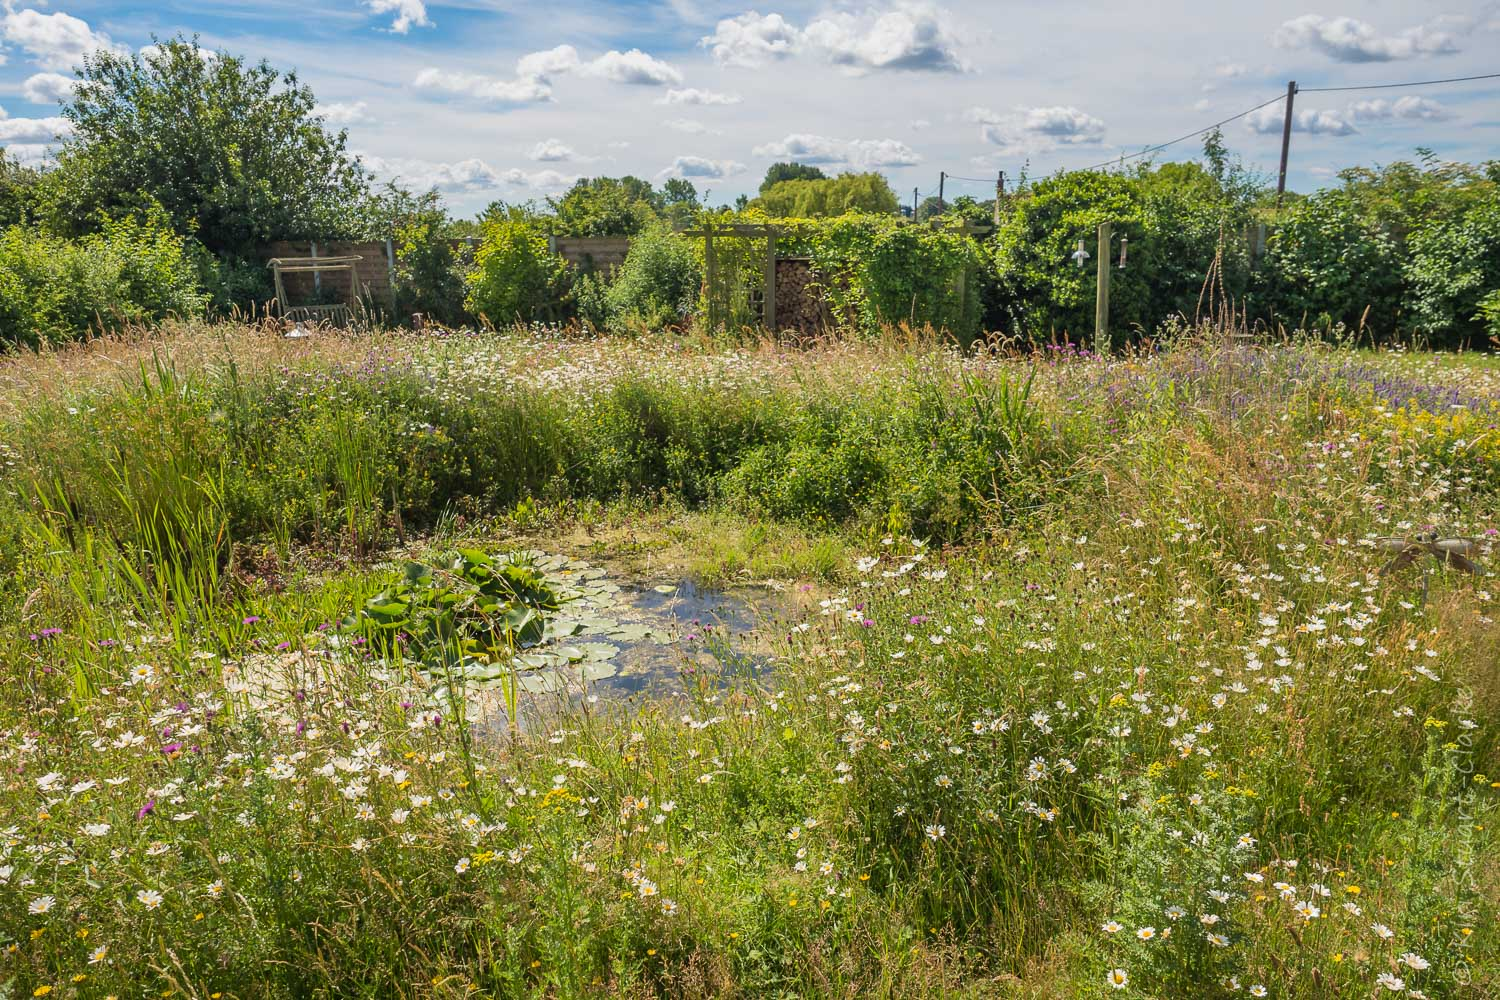 Nar Cottage wildlife pond as it is today, rich in aquatic and marginal vegetation and surrounded by a native wildflower meadow (June 2017)